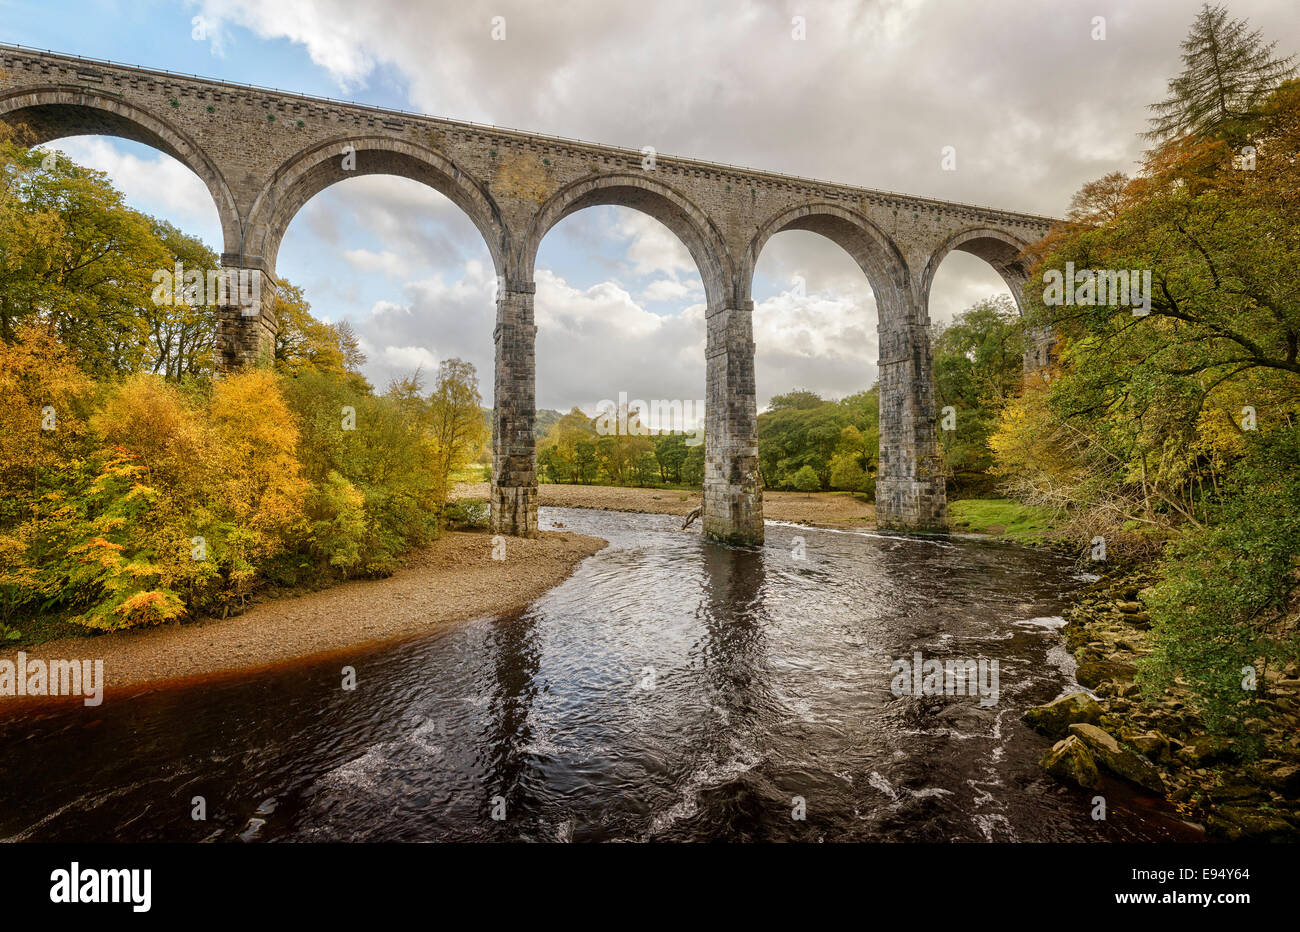 Lambley Viaduct - Stock Image